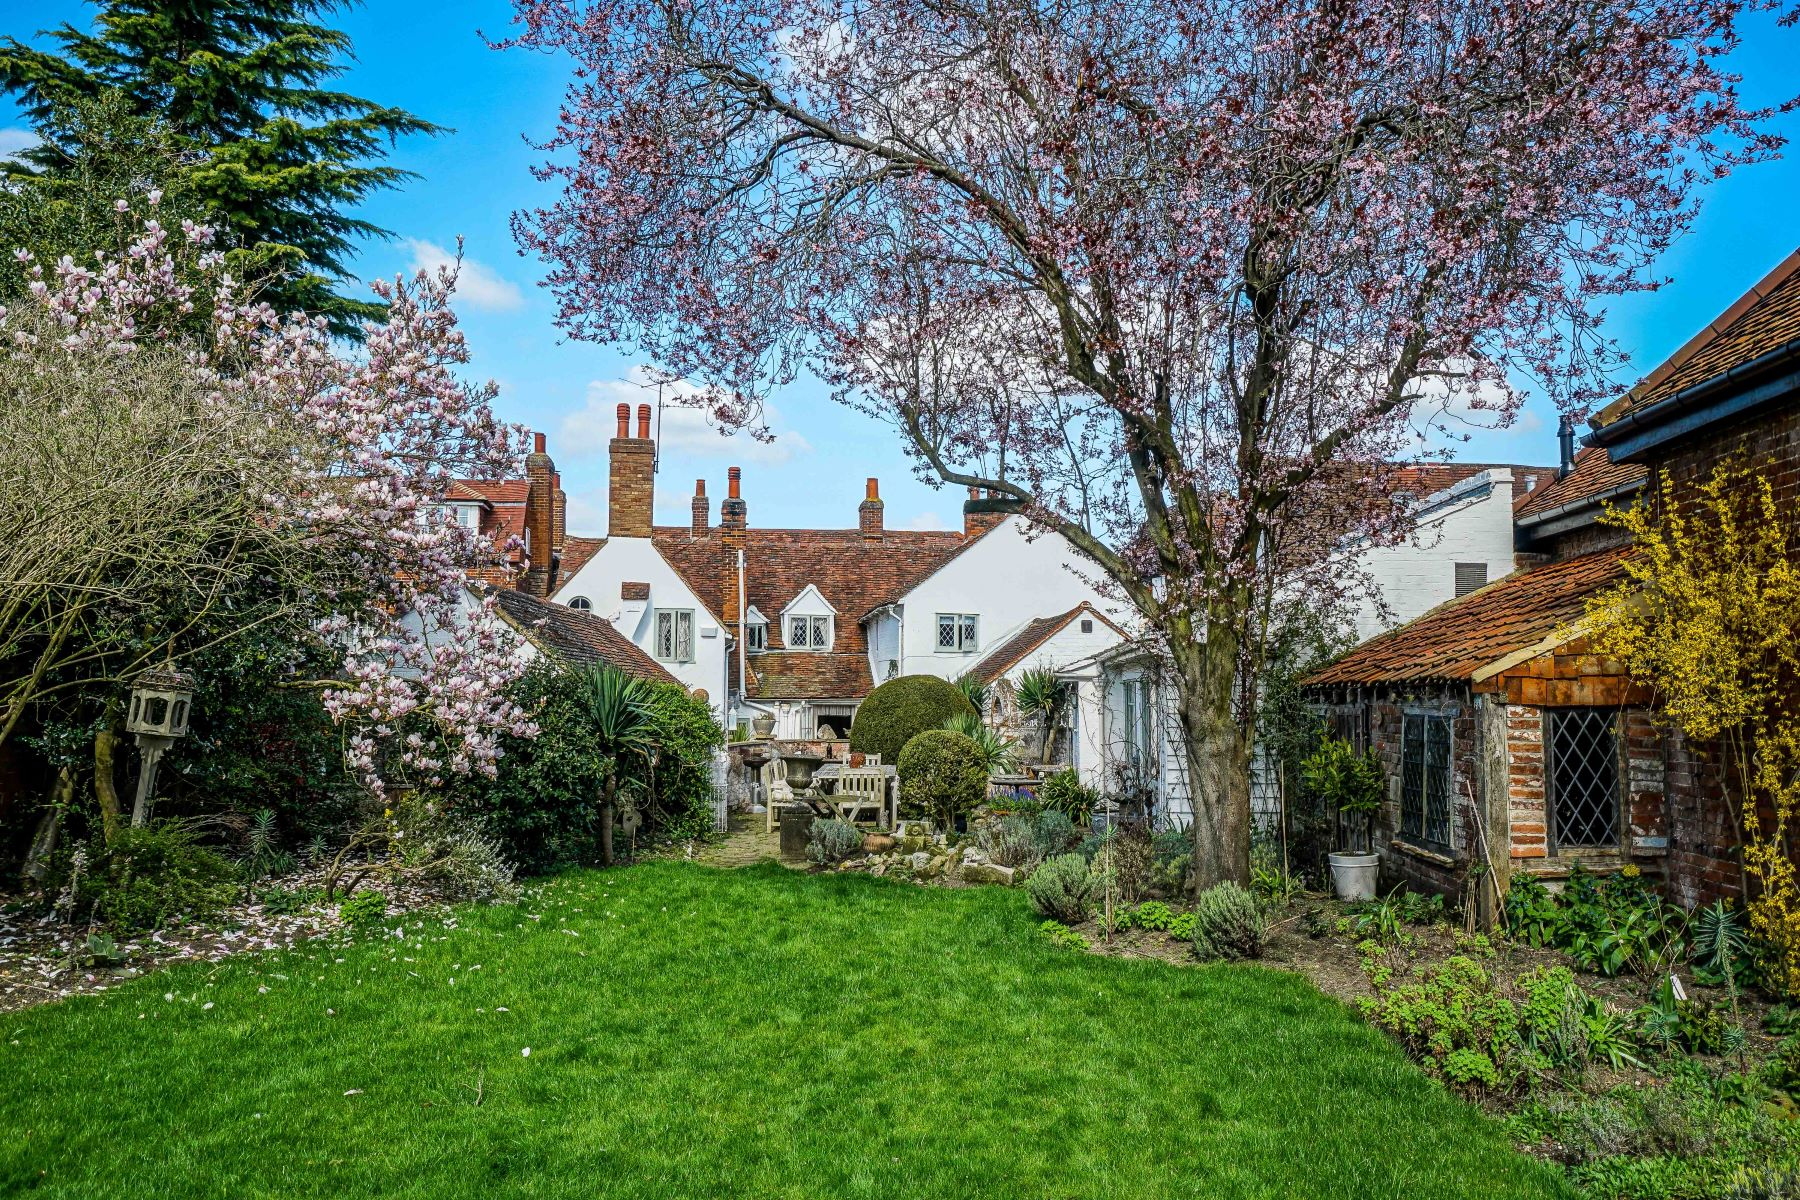 Single Family Homes for Sale at The Green Cottage High Street Cobham, England GU23 6BB United Kingdom